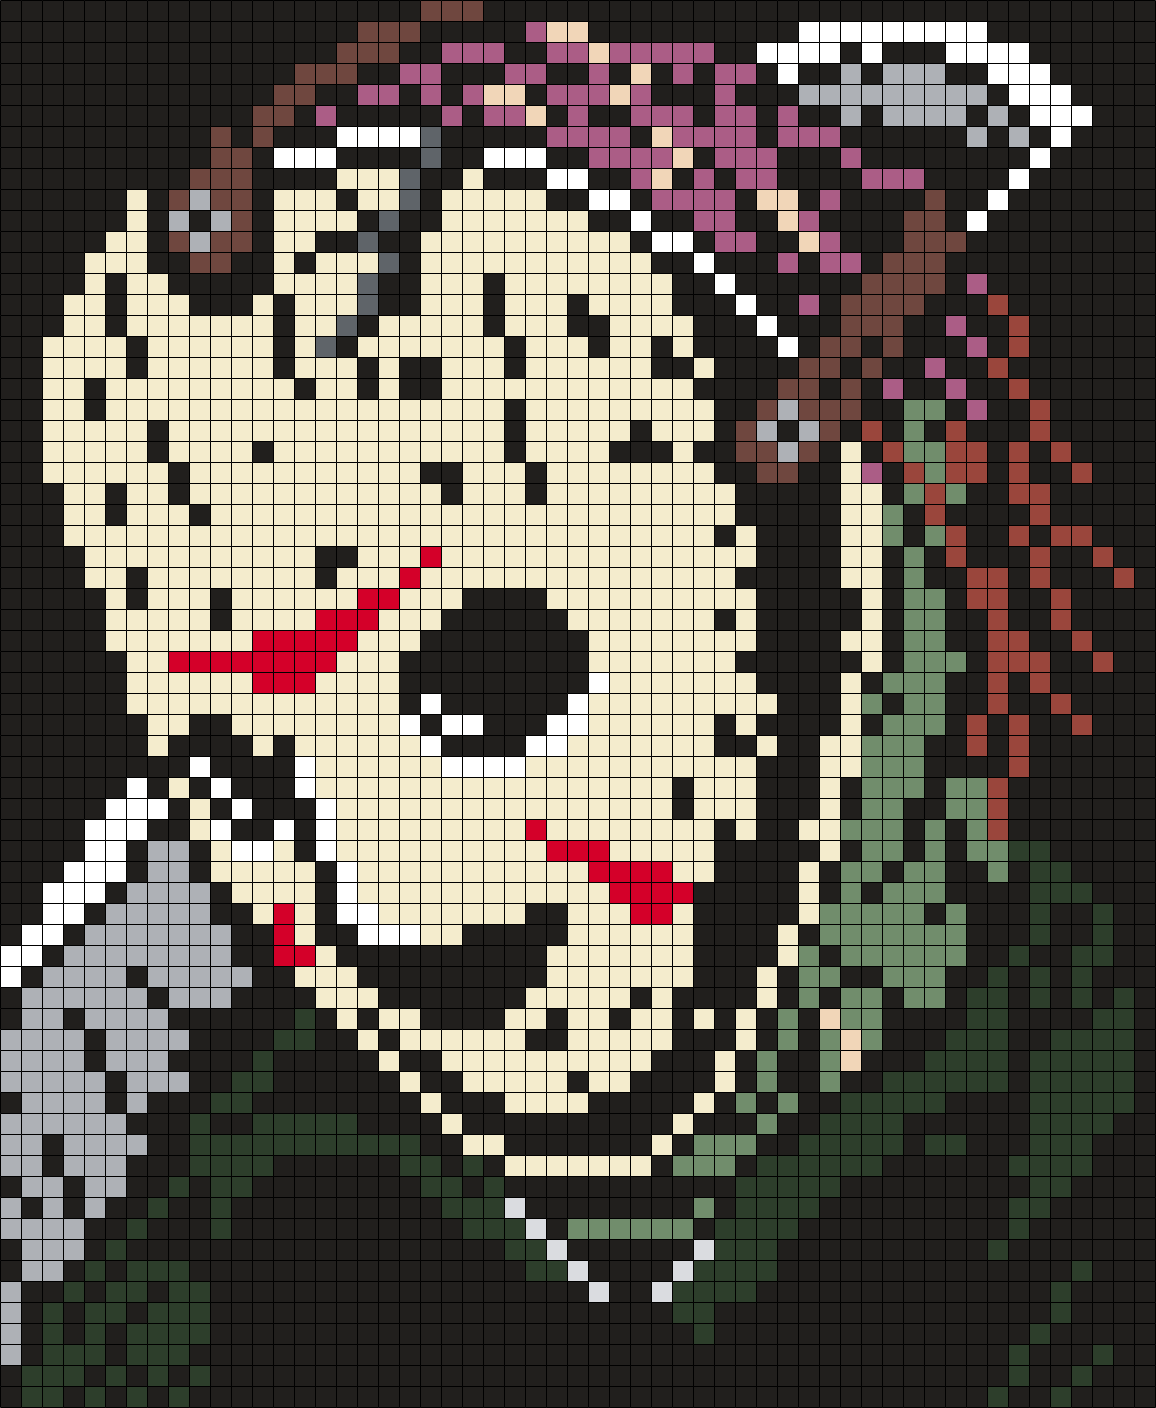 Jason Voorhees / Friday The 13th Poster (Square)